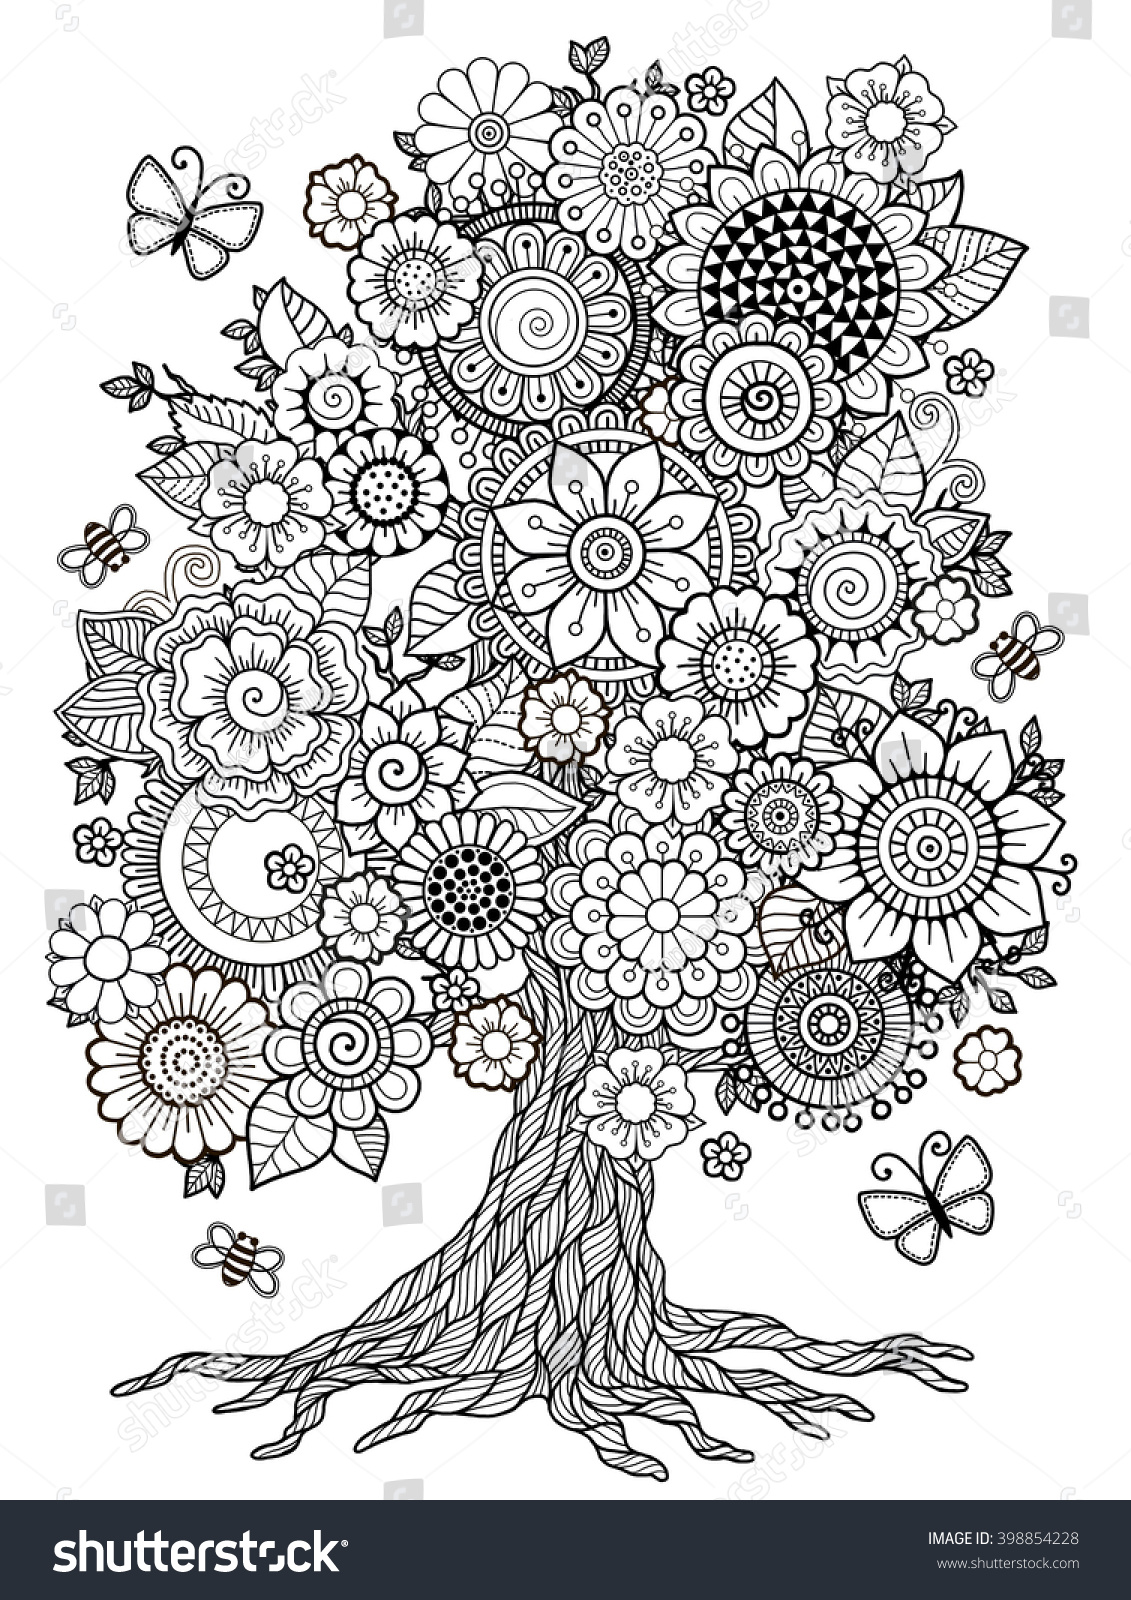 Blossom Tree Coloring Book Adult Doodles Stock Illustration ...